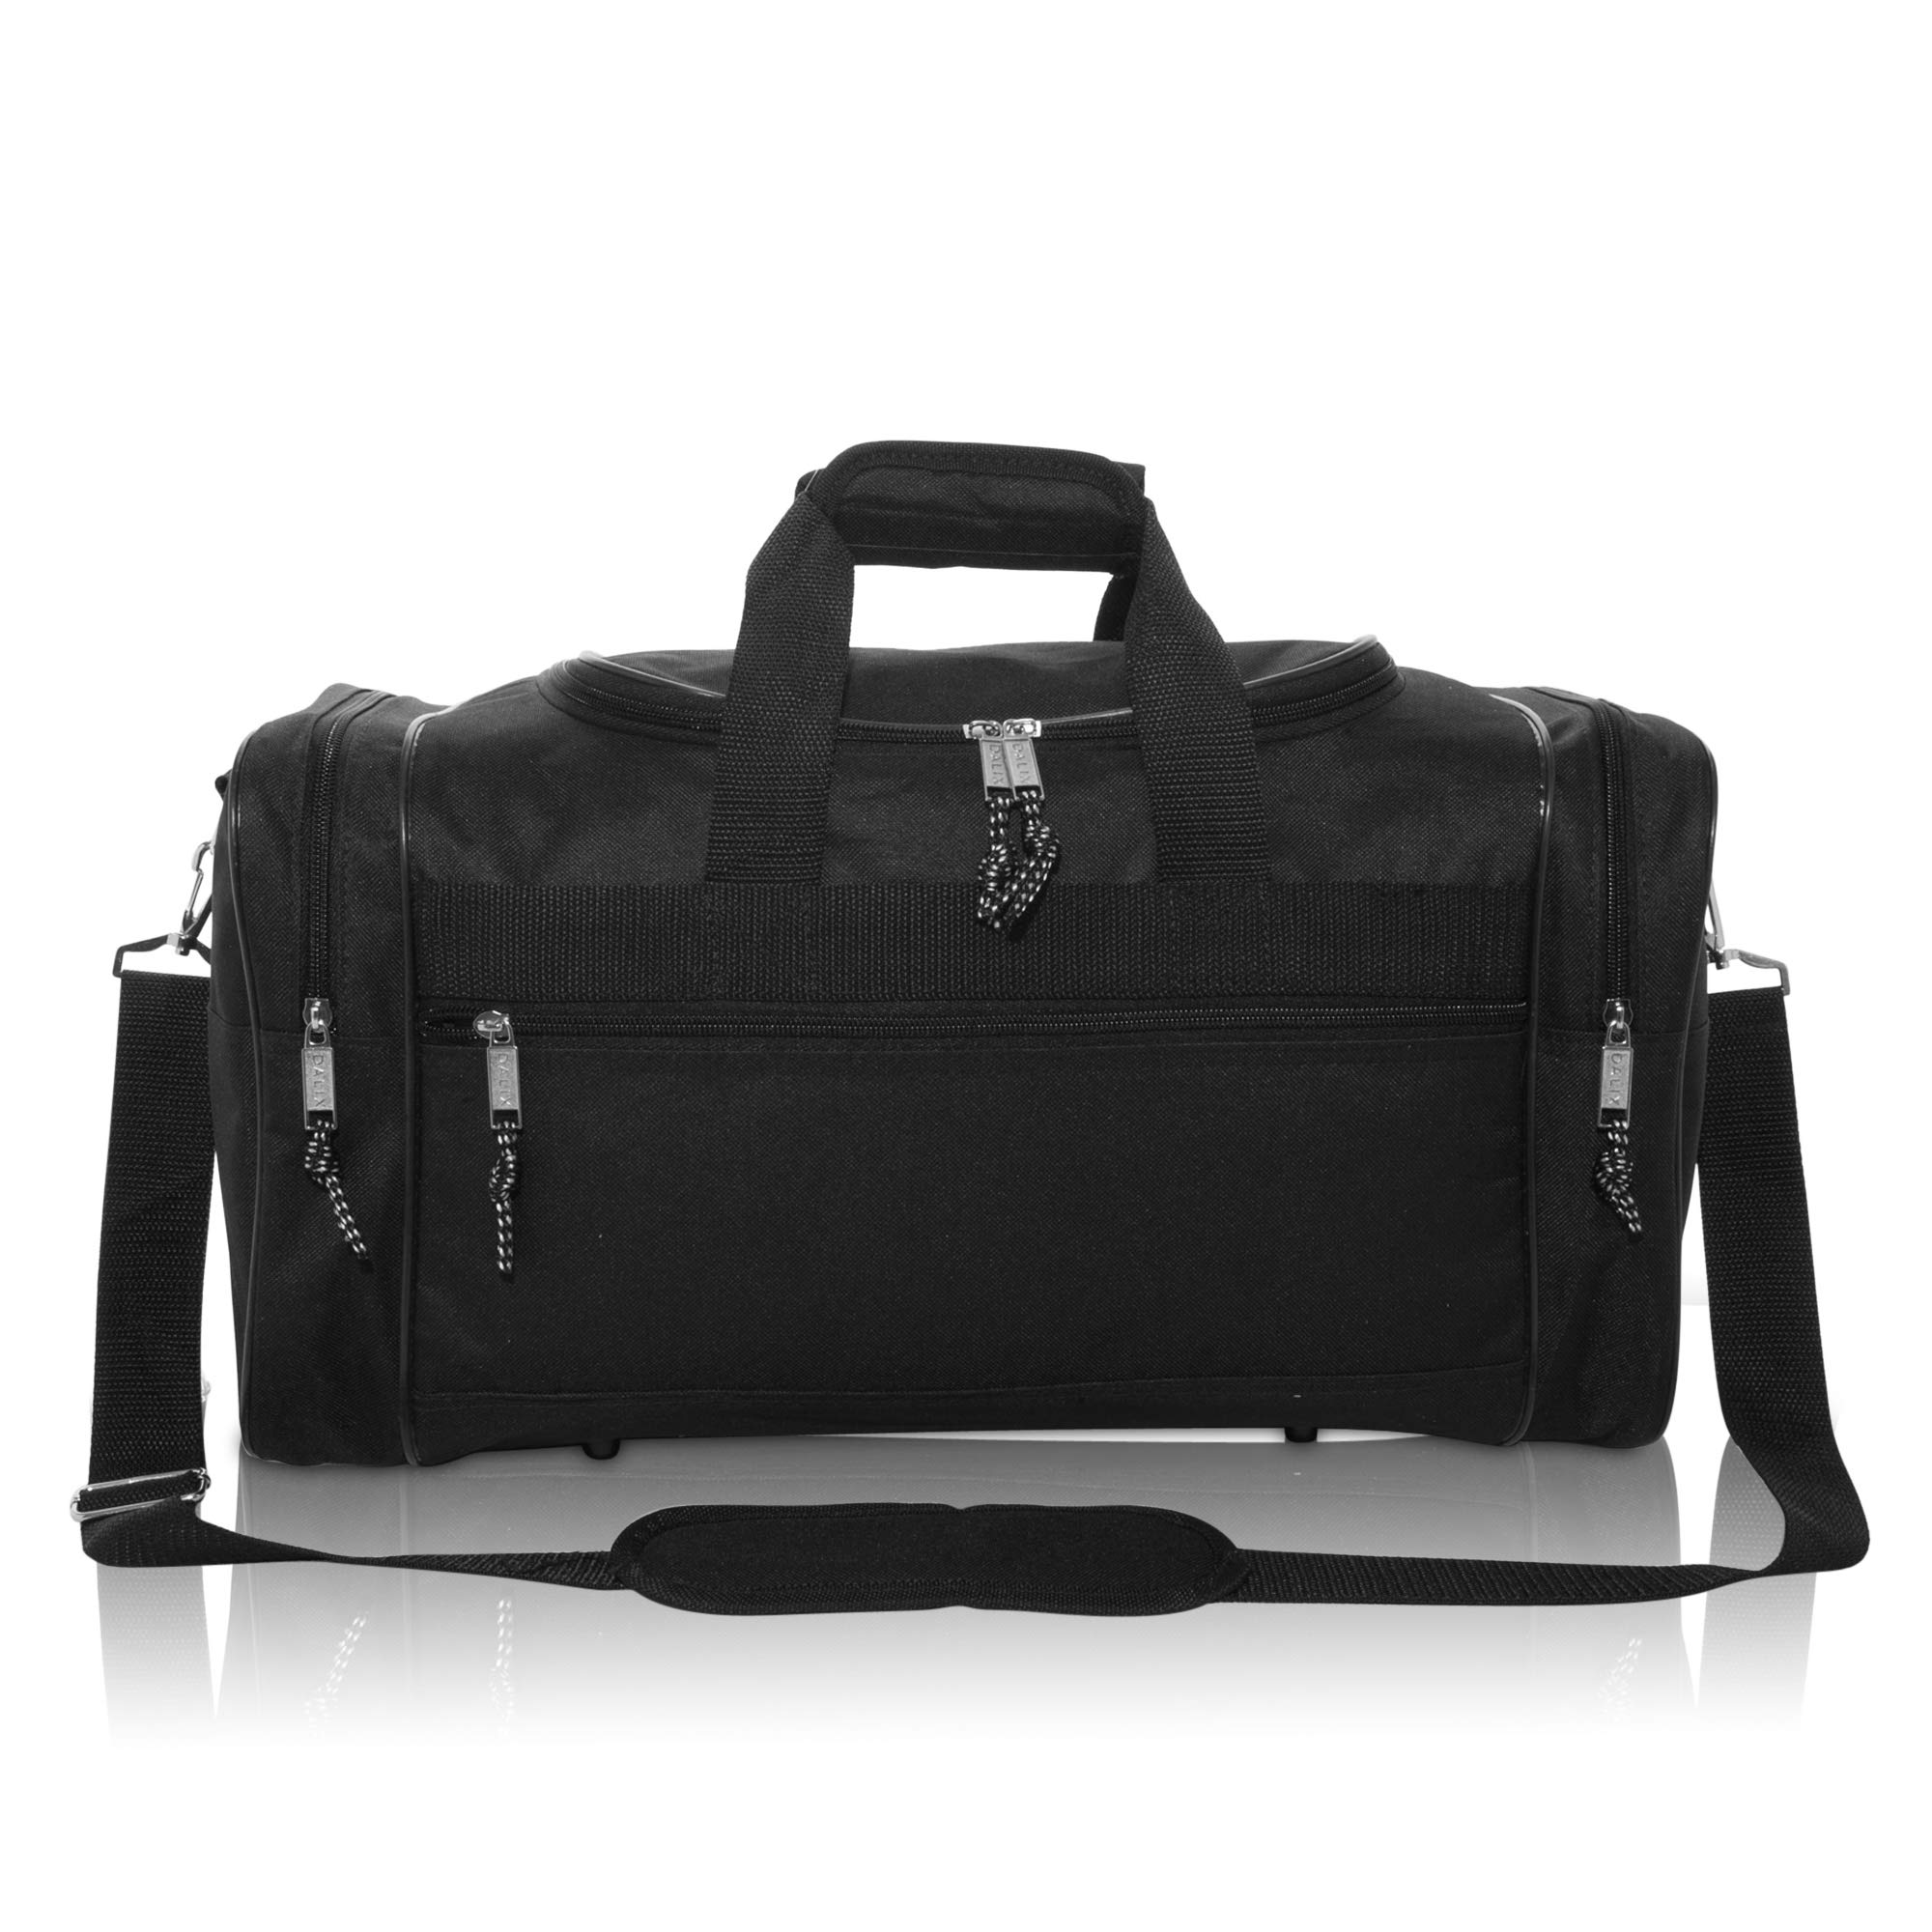 DALIX Blank Duffle Bag Duffel Bag in Black Gym Bag - DF-005-Black   Sports  Duffels   Clothing, Shoes   Jewelry - tibs 13a3f680d2